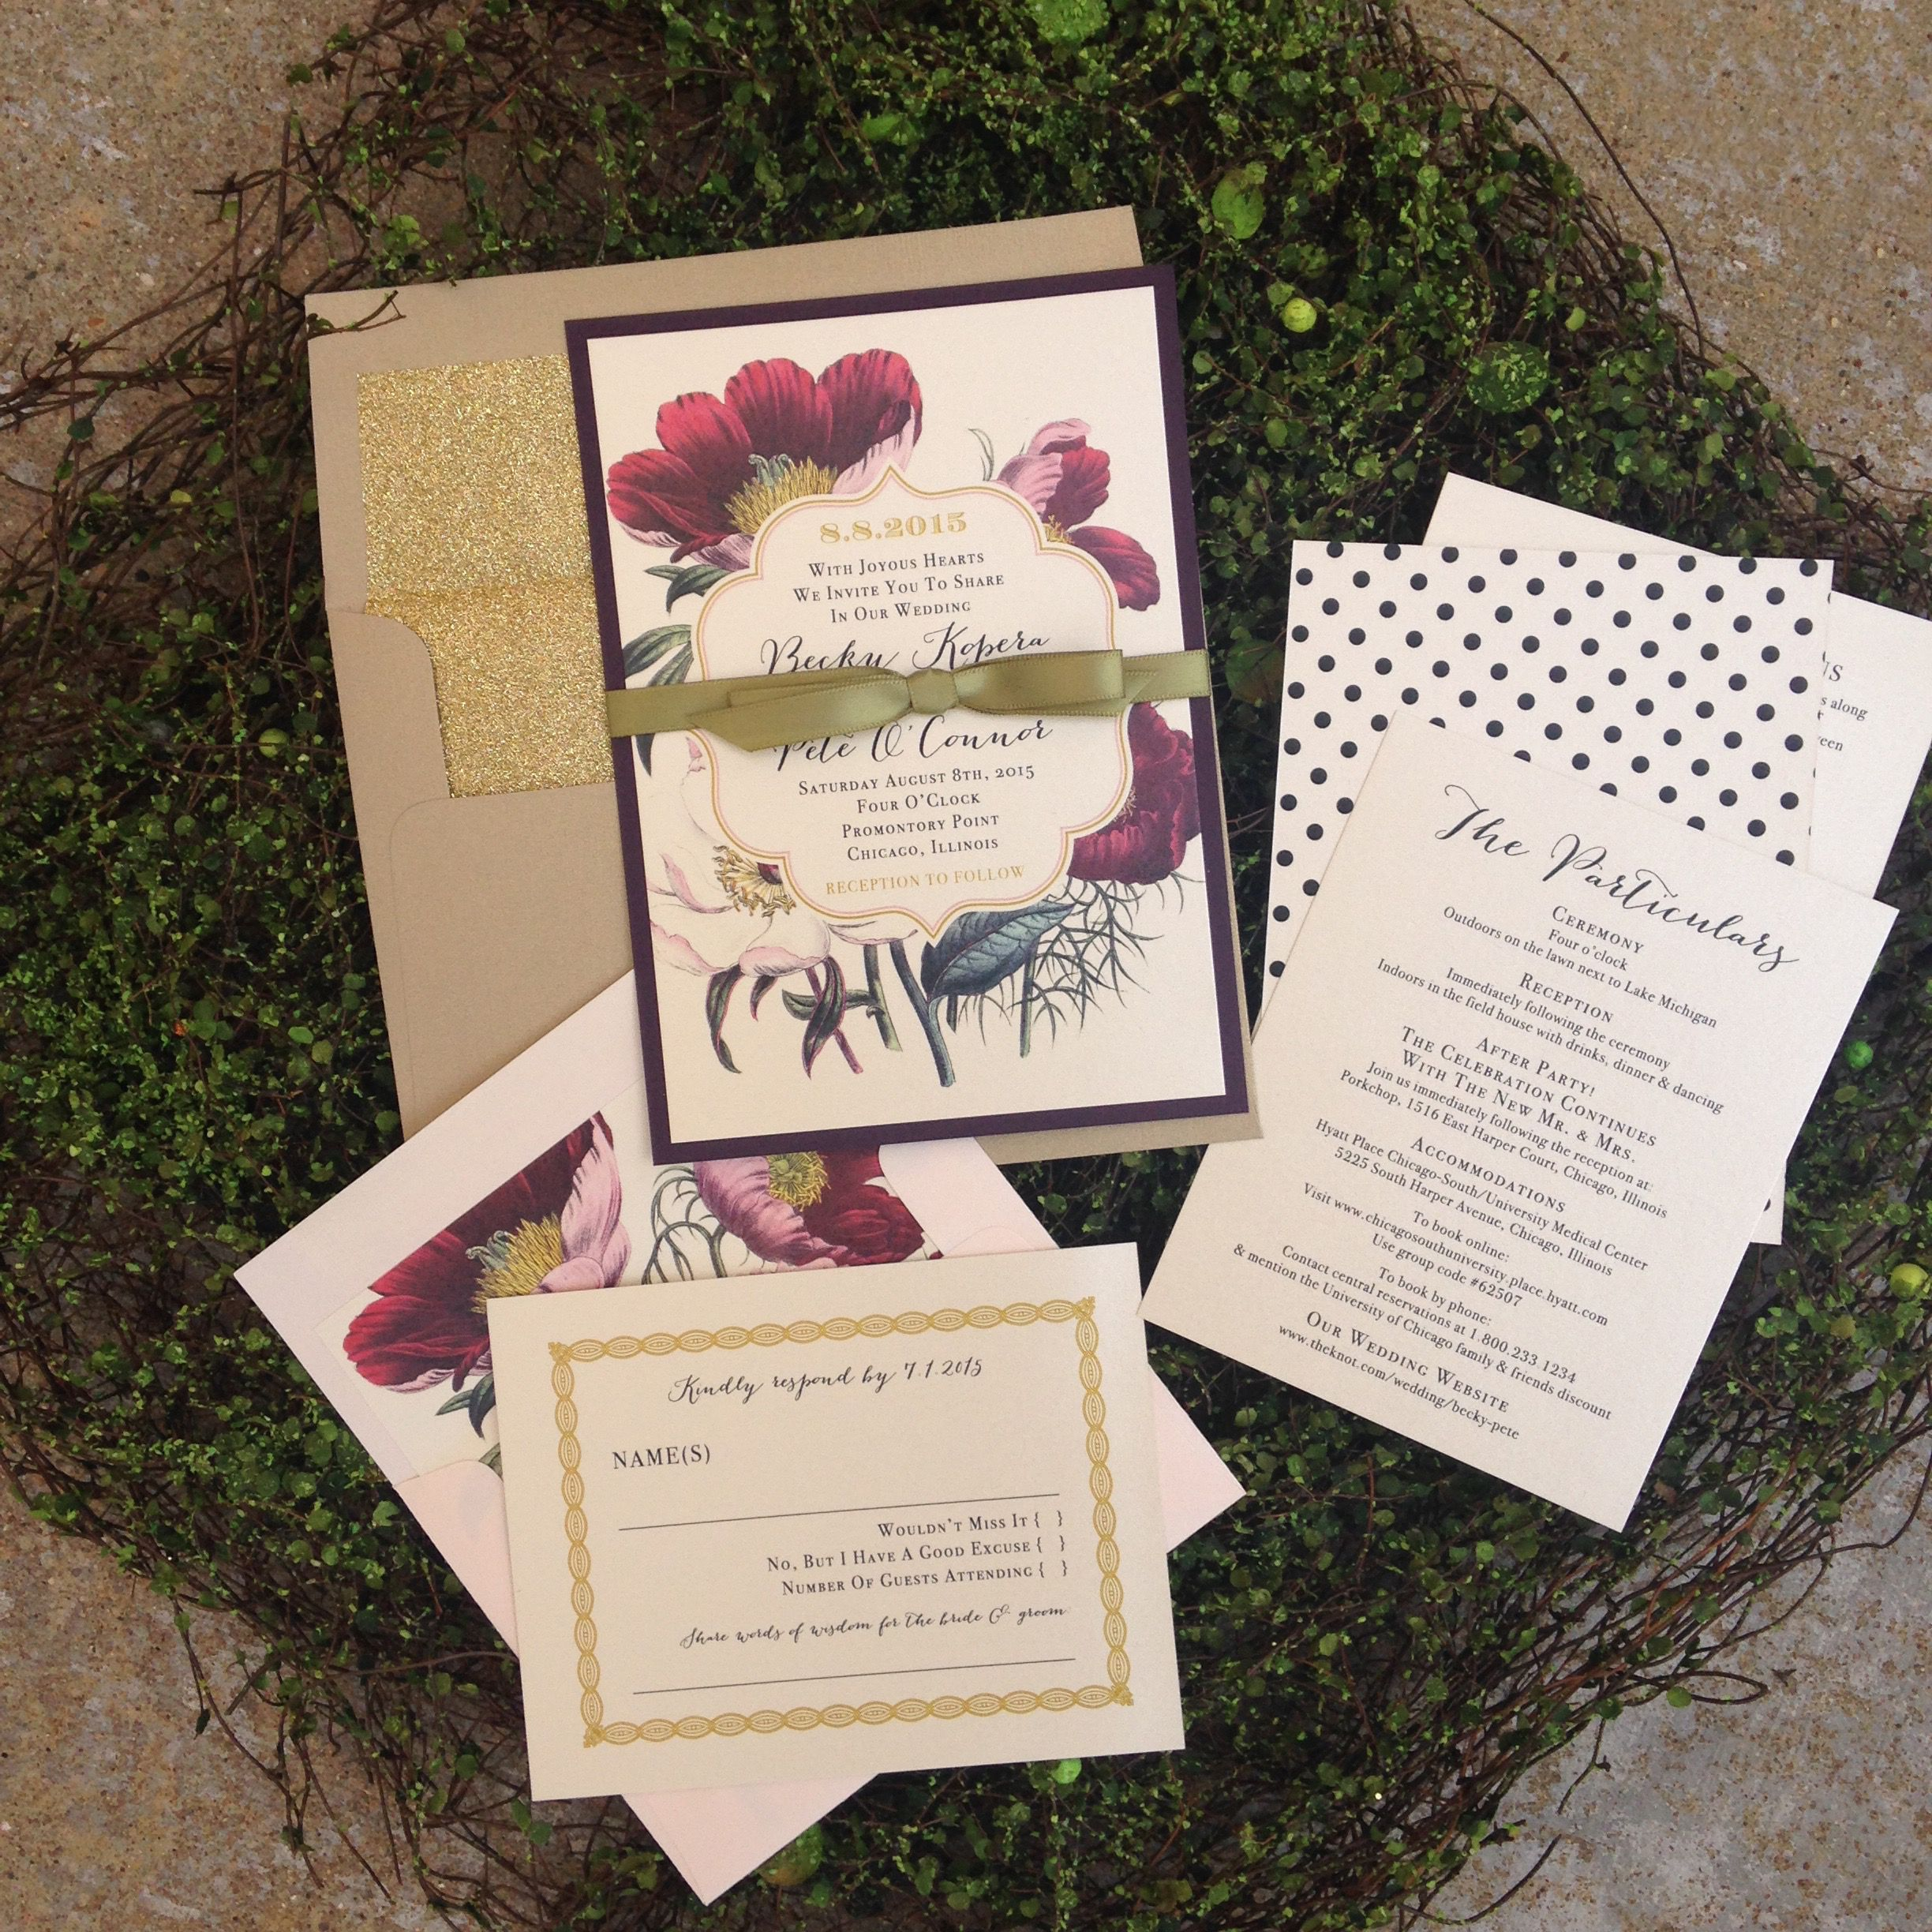 From Wedding Invitations To Ceremony Programs, Set The